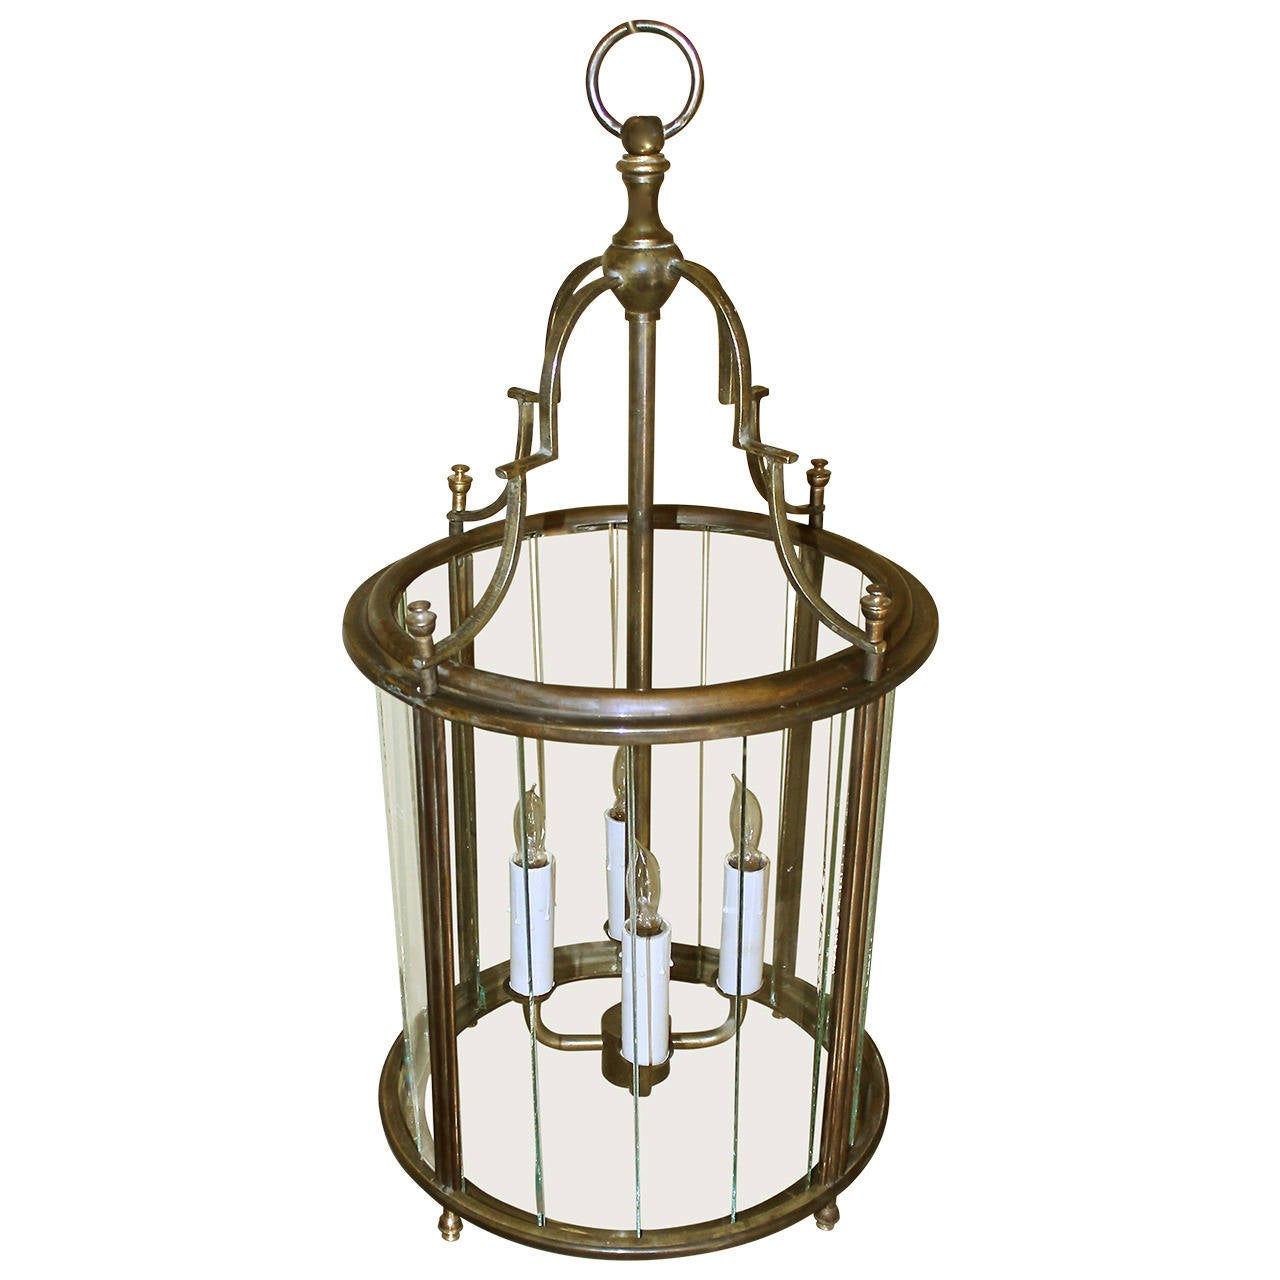 Italian Neoclassic Brass Hall Lantern Pendant Light